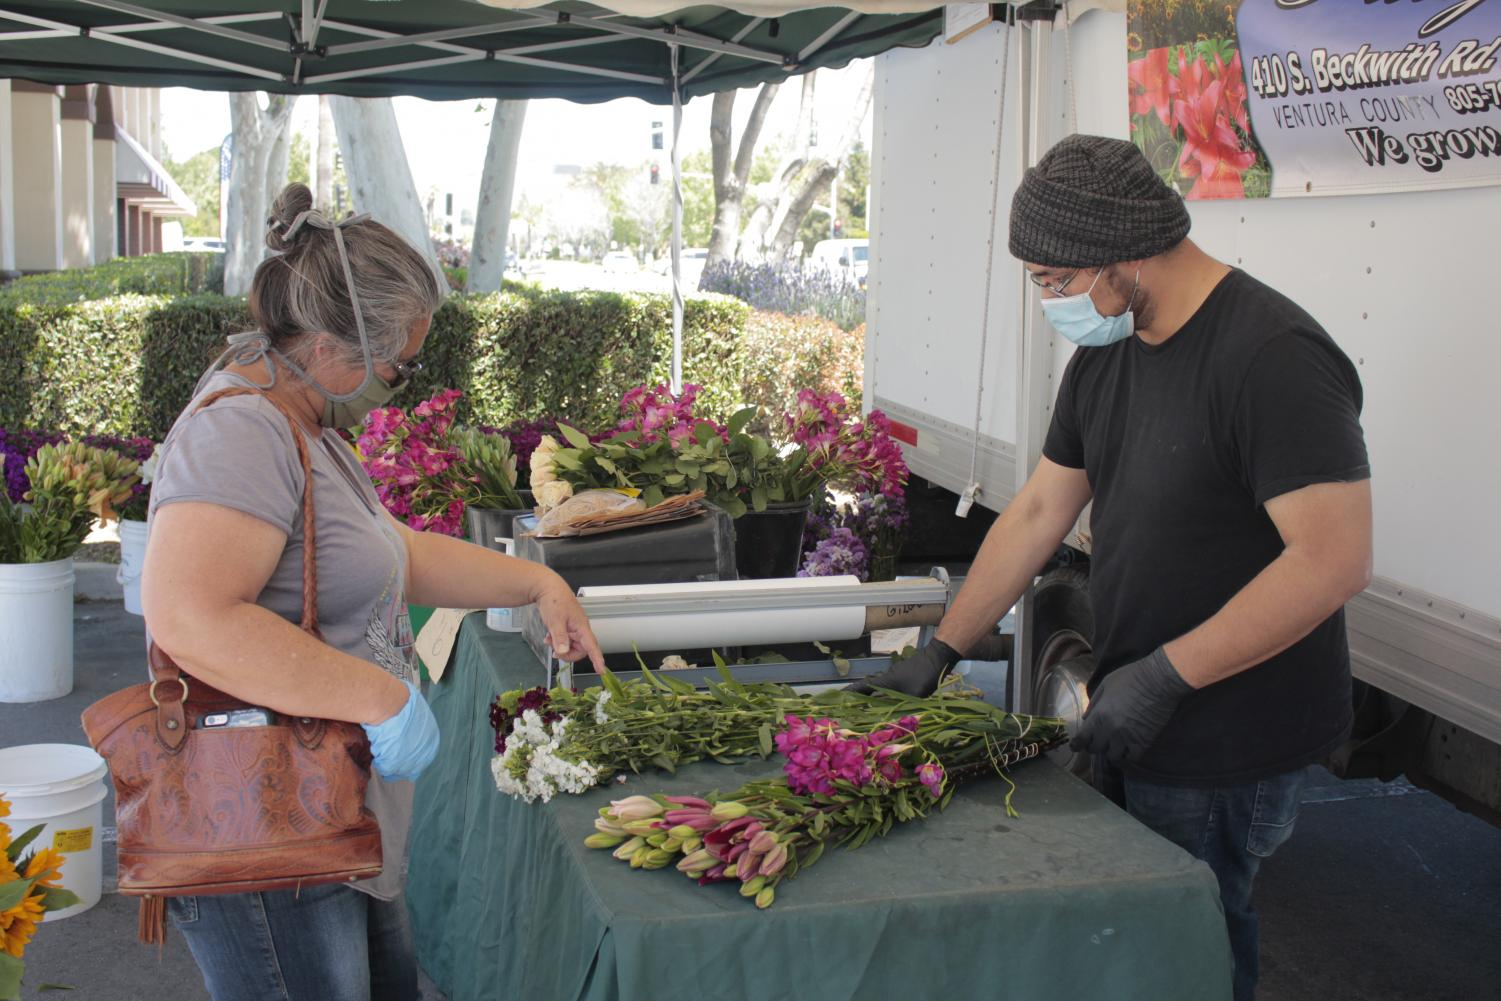 Doris Cox from Simi Valley purchases flowers from Mario Lopez of Santa Paula at the Simi Valley Farmers Market on April 24, 2020.